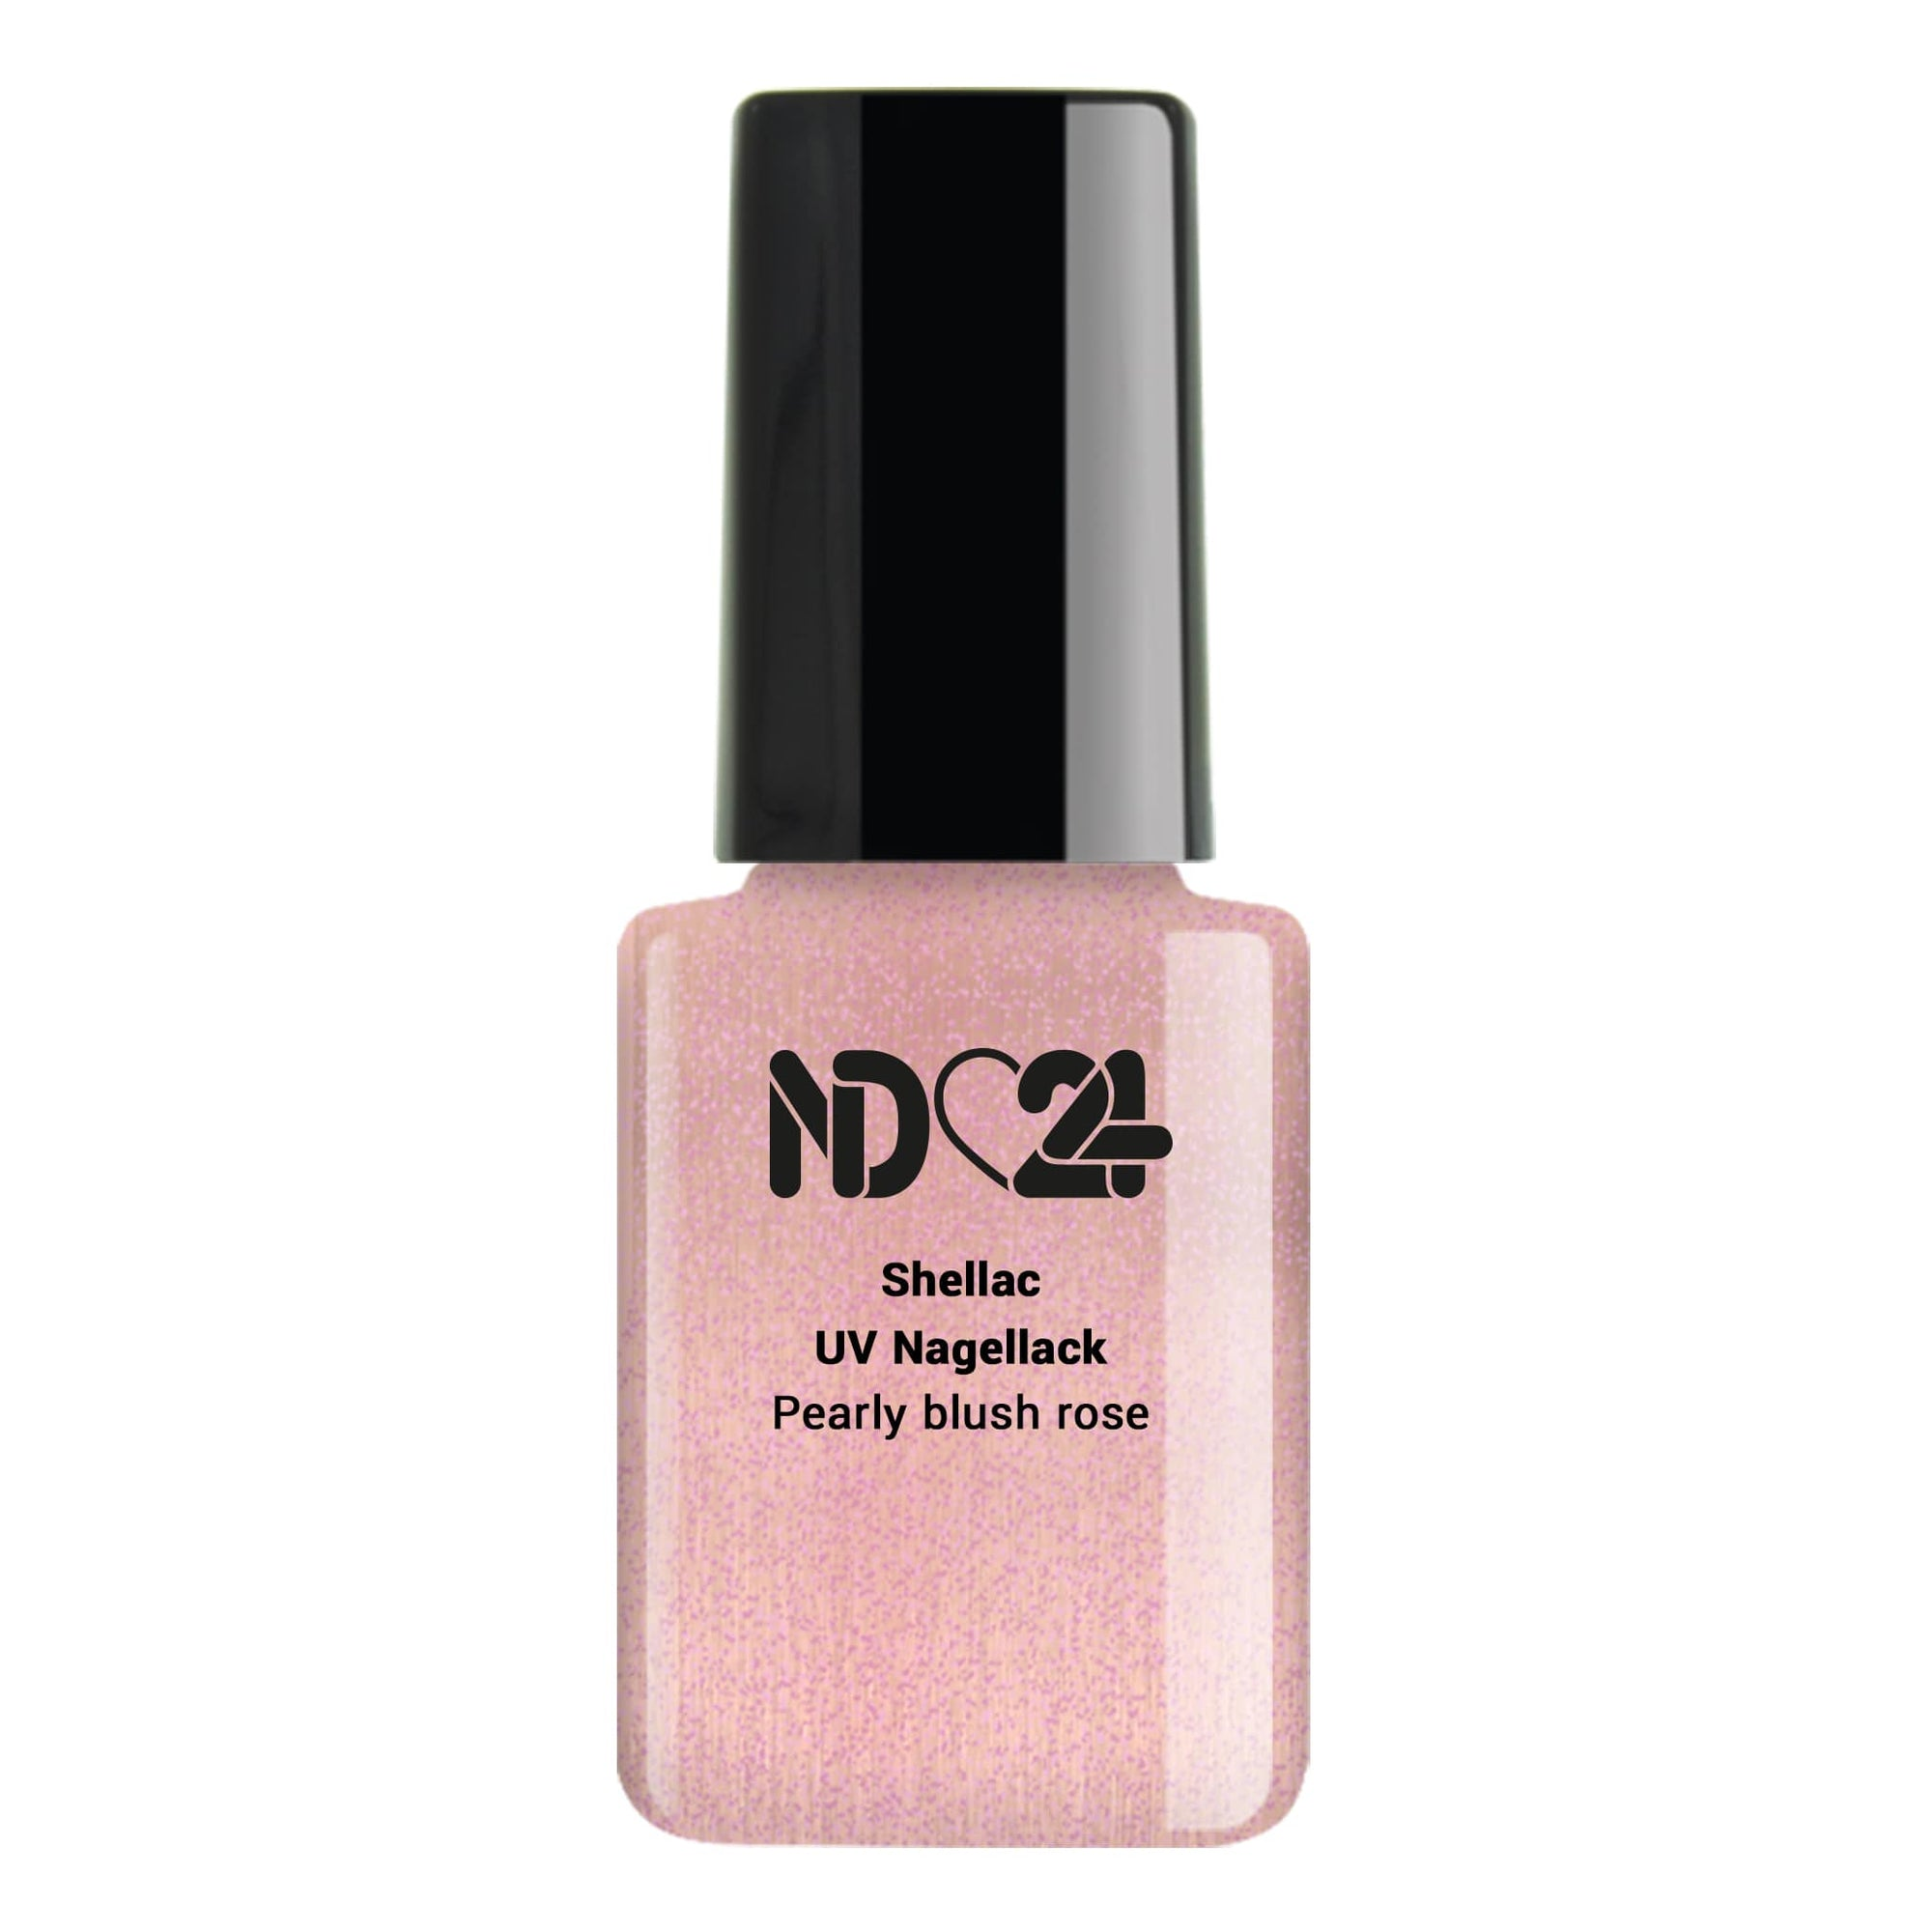 Shellac UV Nagellack Pearly blush rose